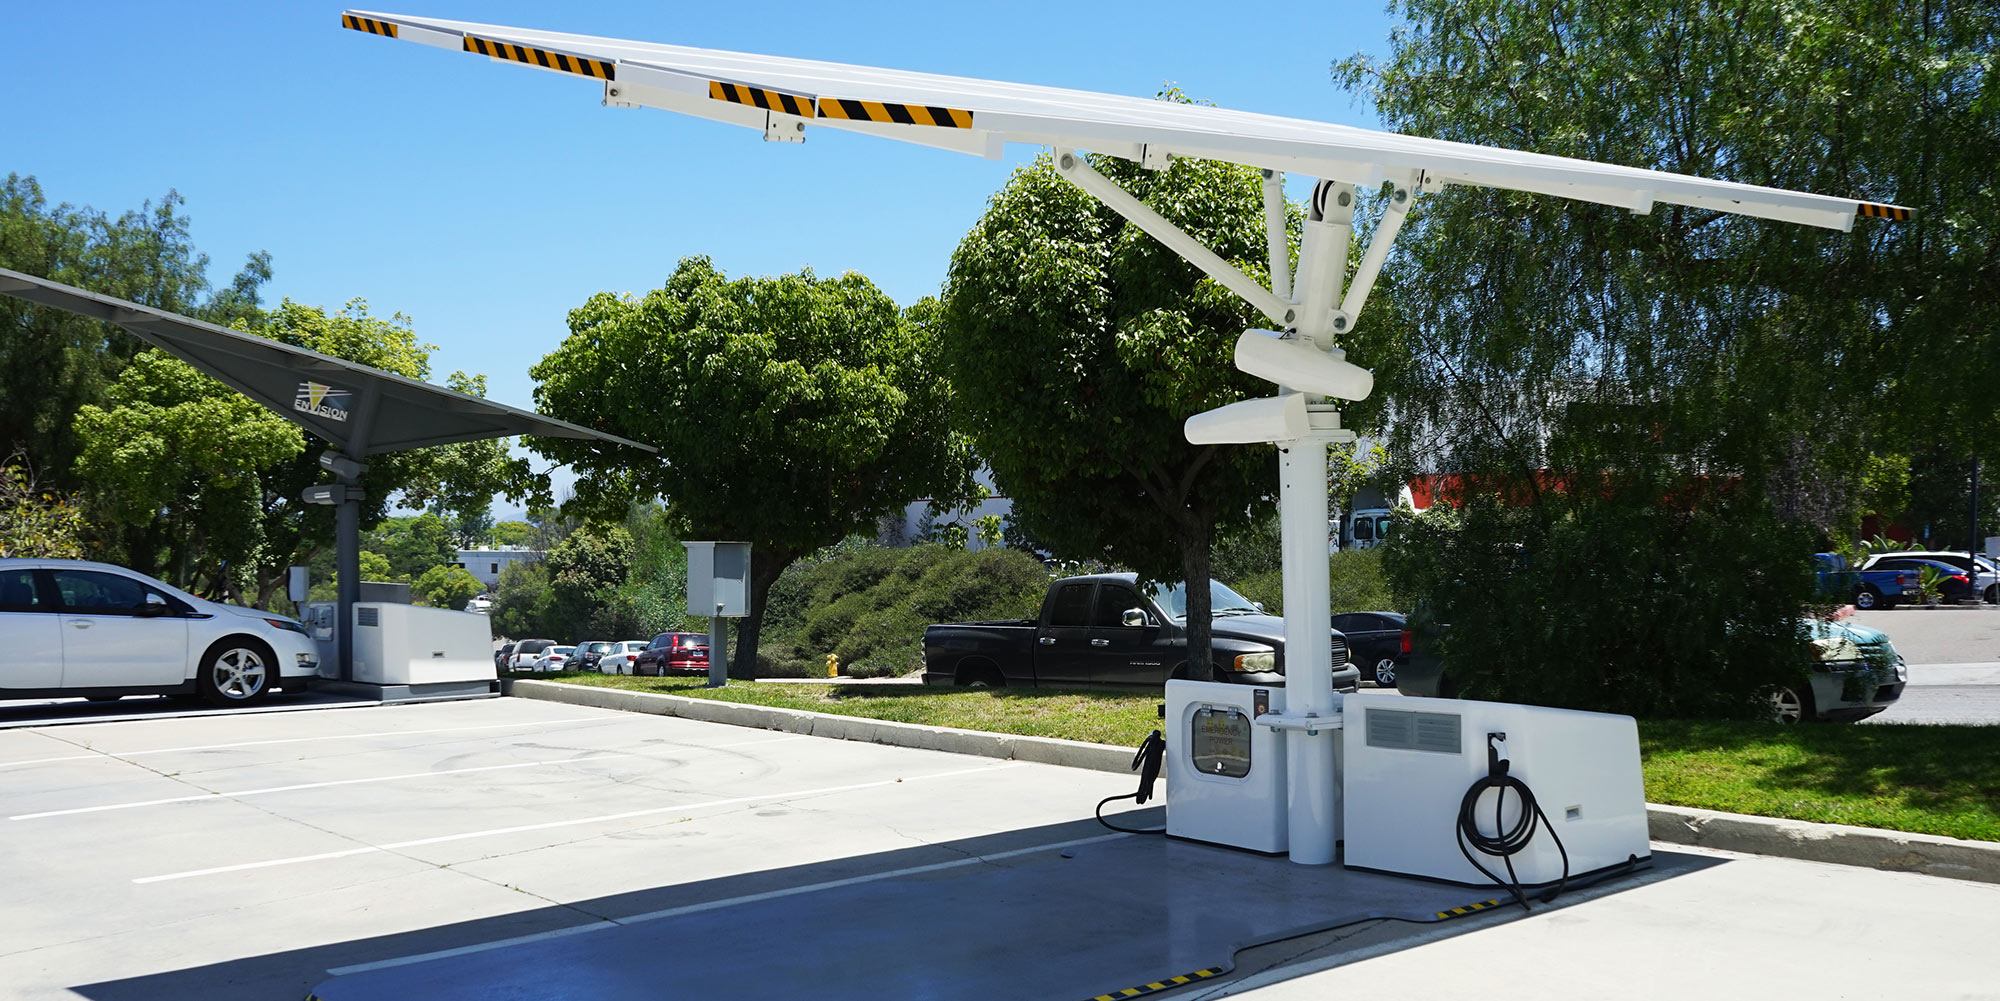 Electrify America to deploy 30 off-grid, solar EV chargers in rural California communities - Electrek